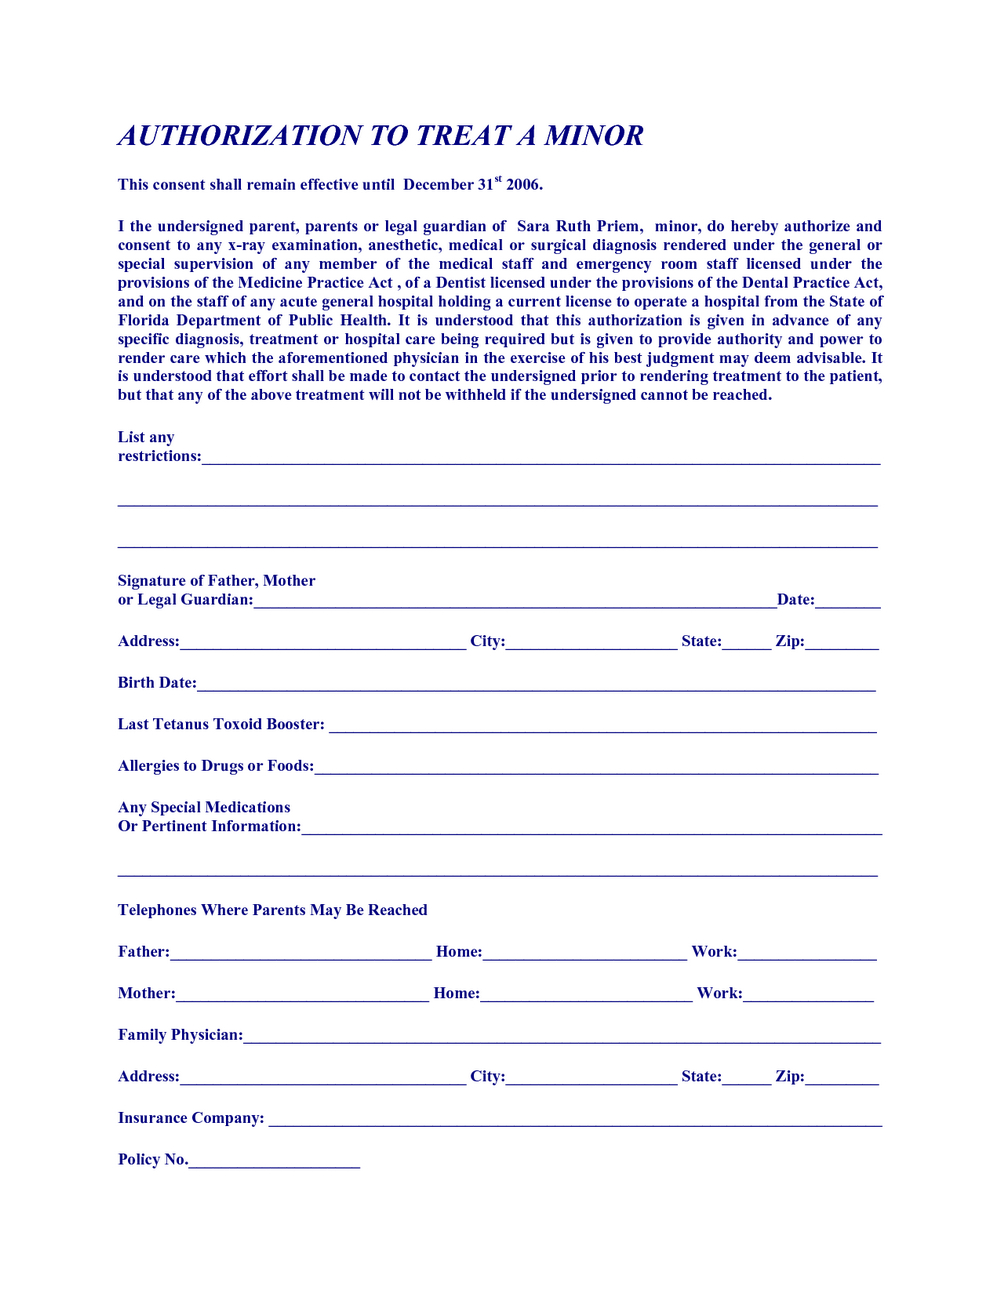 Free Printable Child Medical Consent Form For Grandparents | Mbm Legal - Free Printable Medical Consent Form